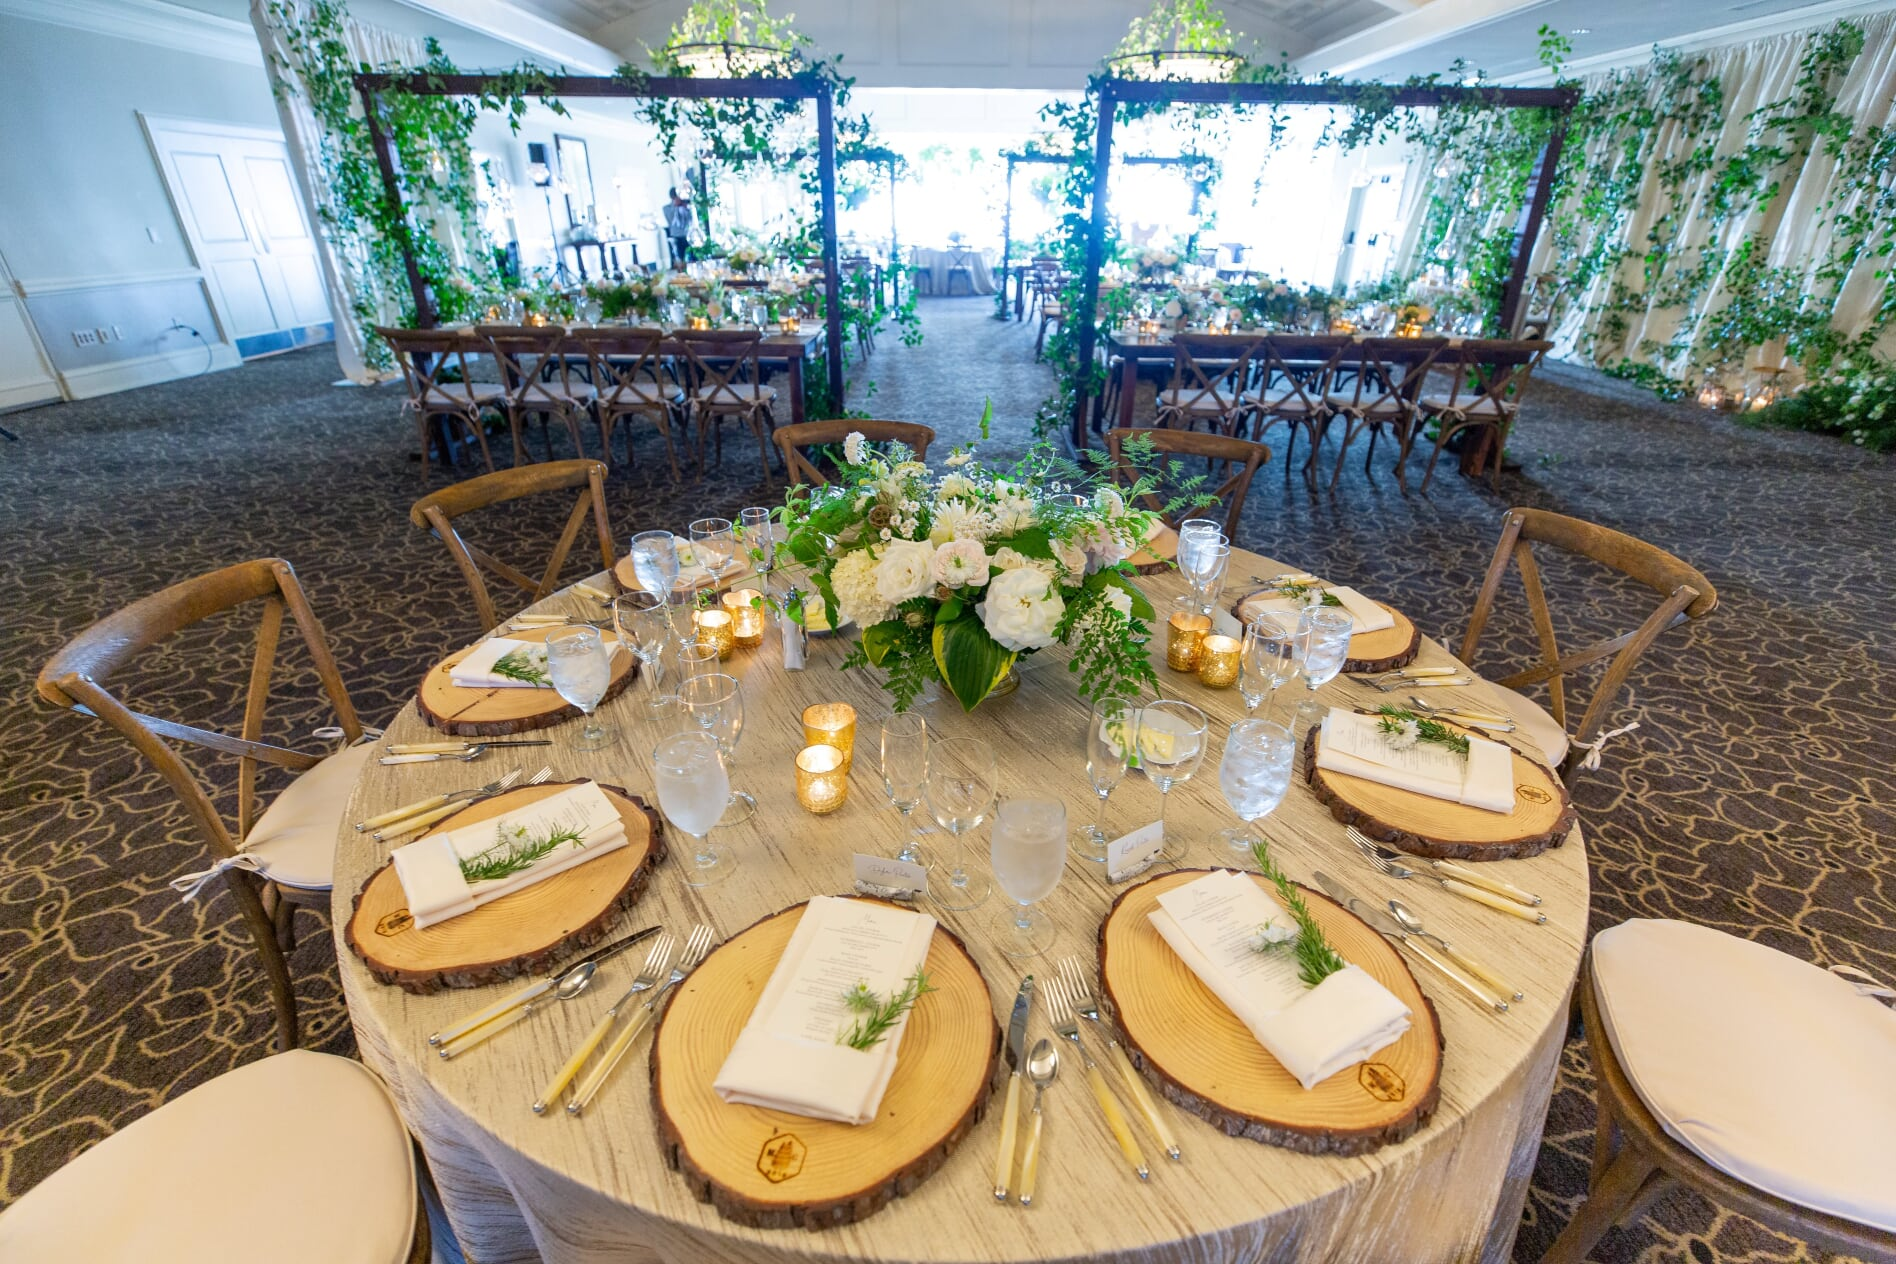 Round table at wedding reception with white and green centerpiece and wooden charger plates